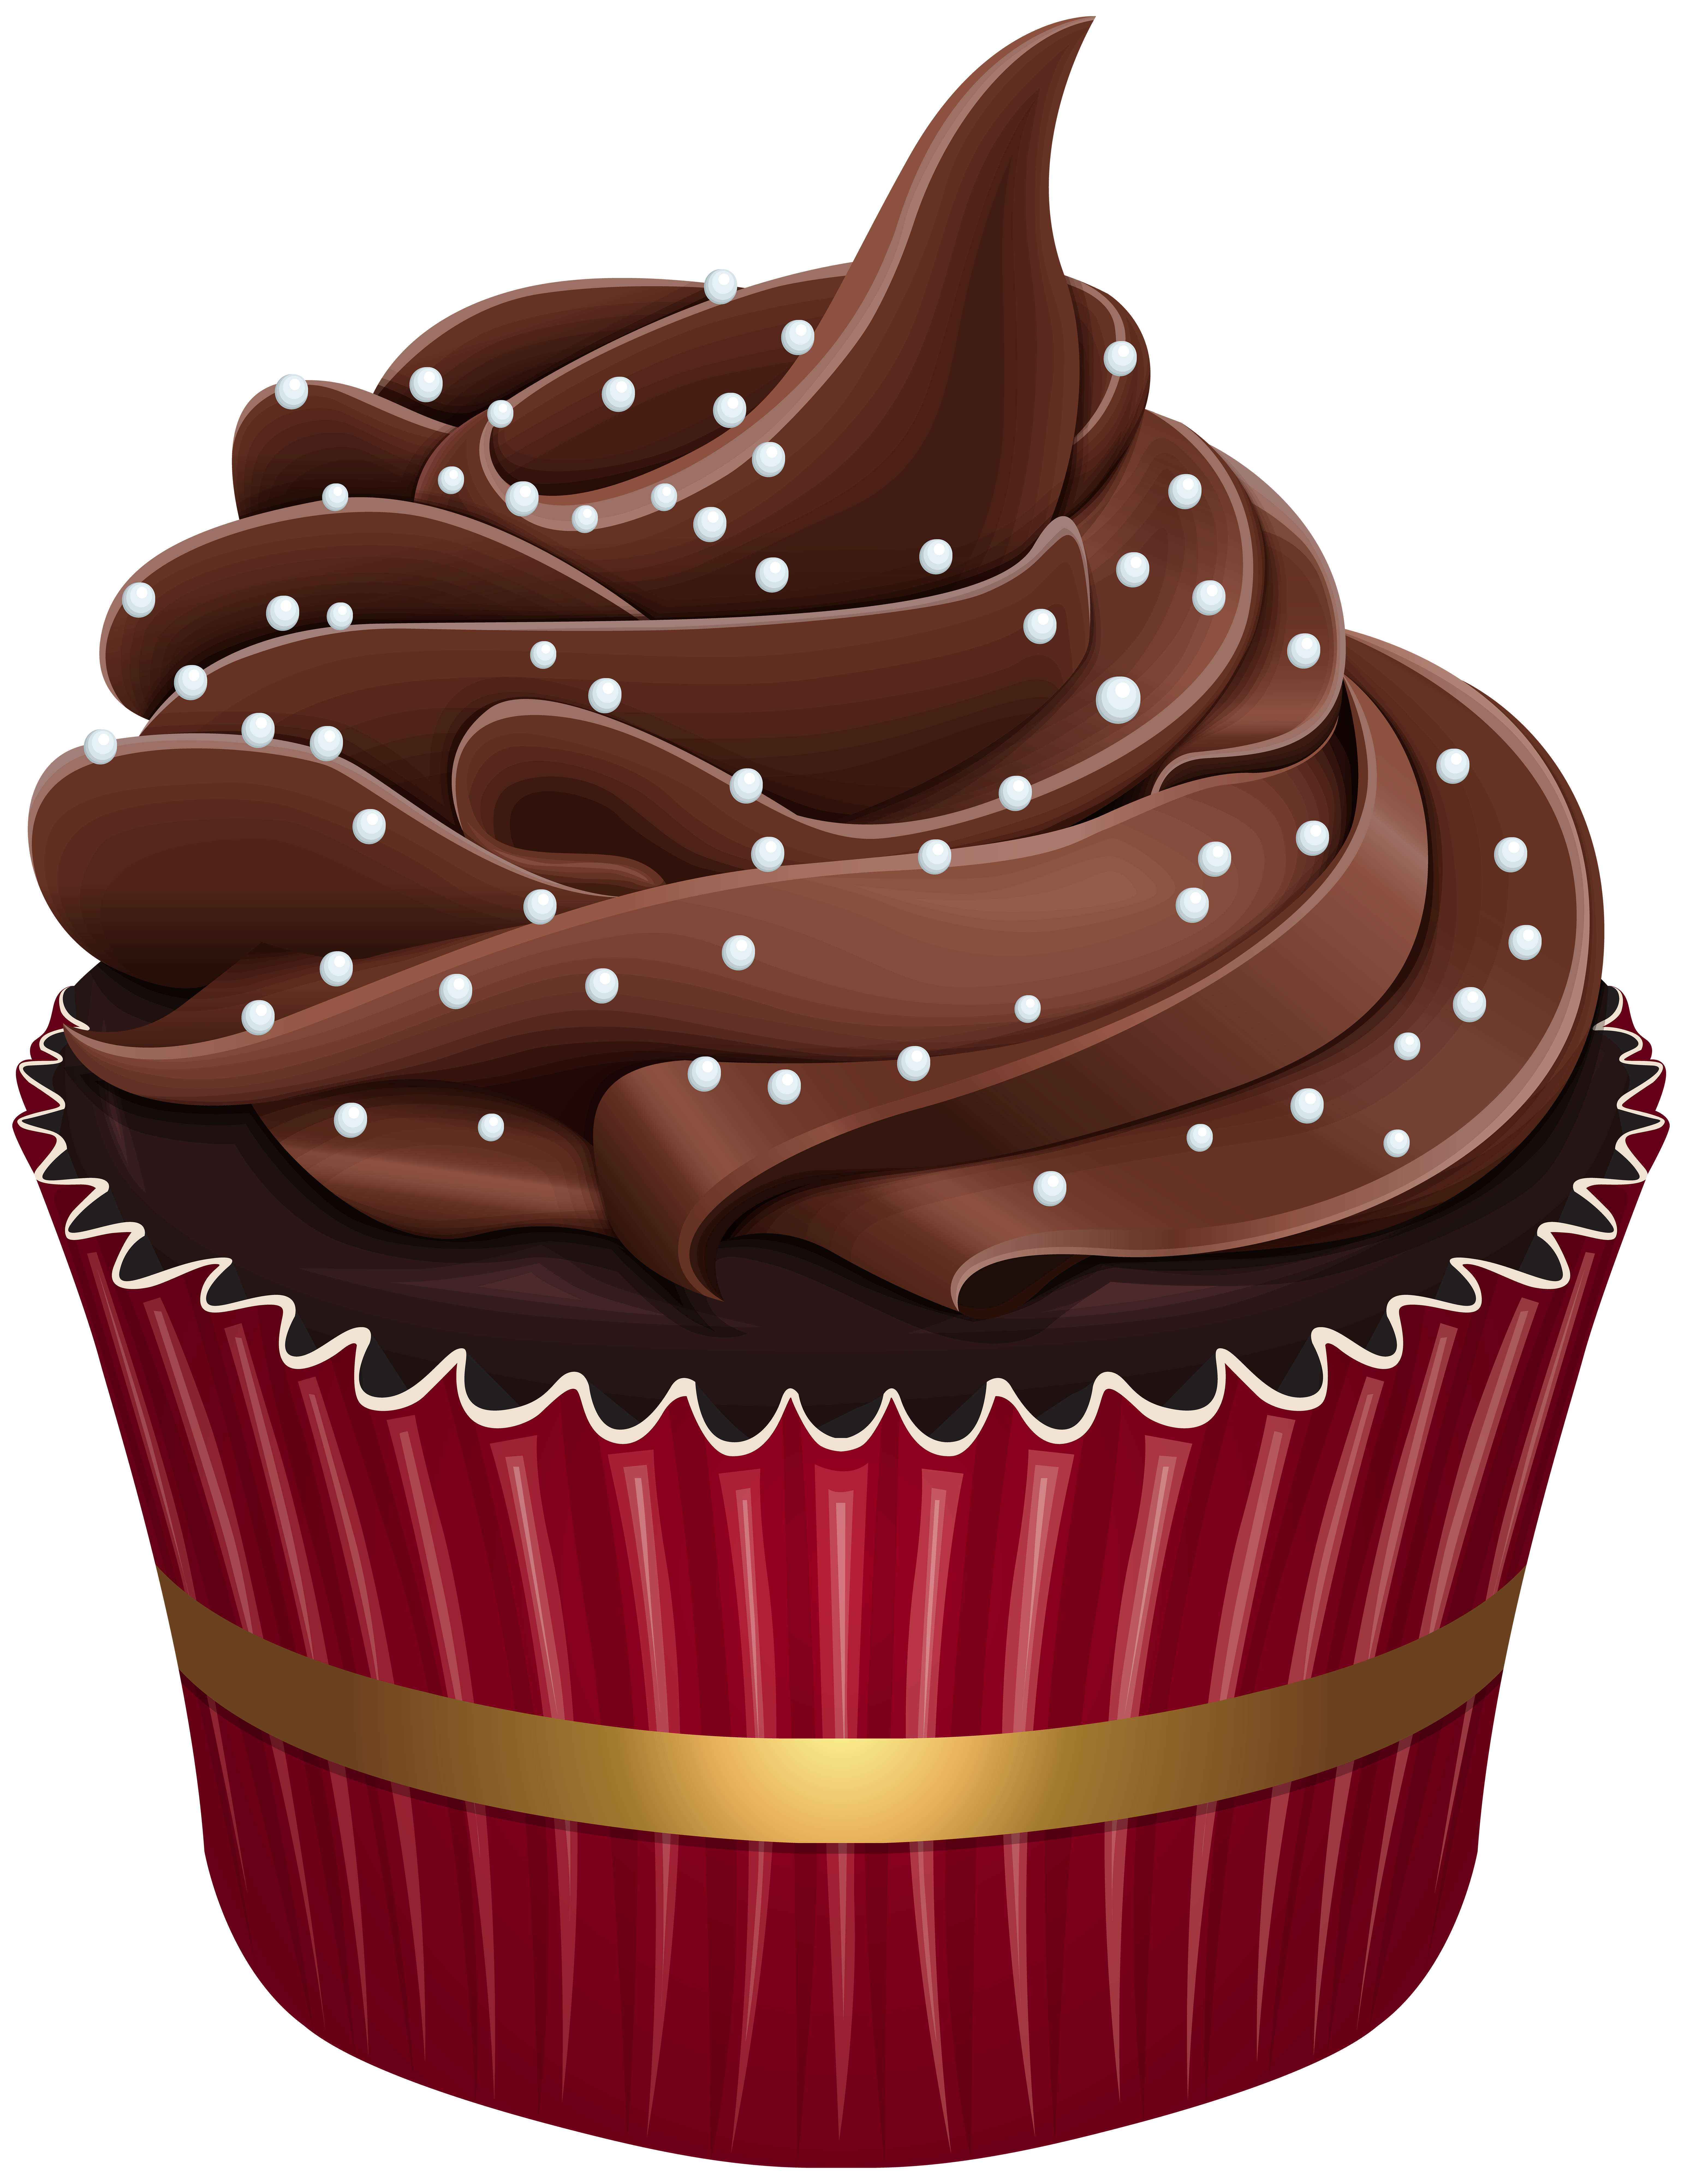 Png clip art gallery. Clipart cupcake star